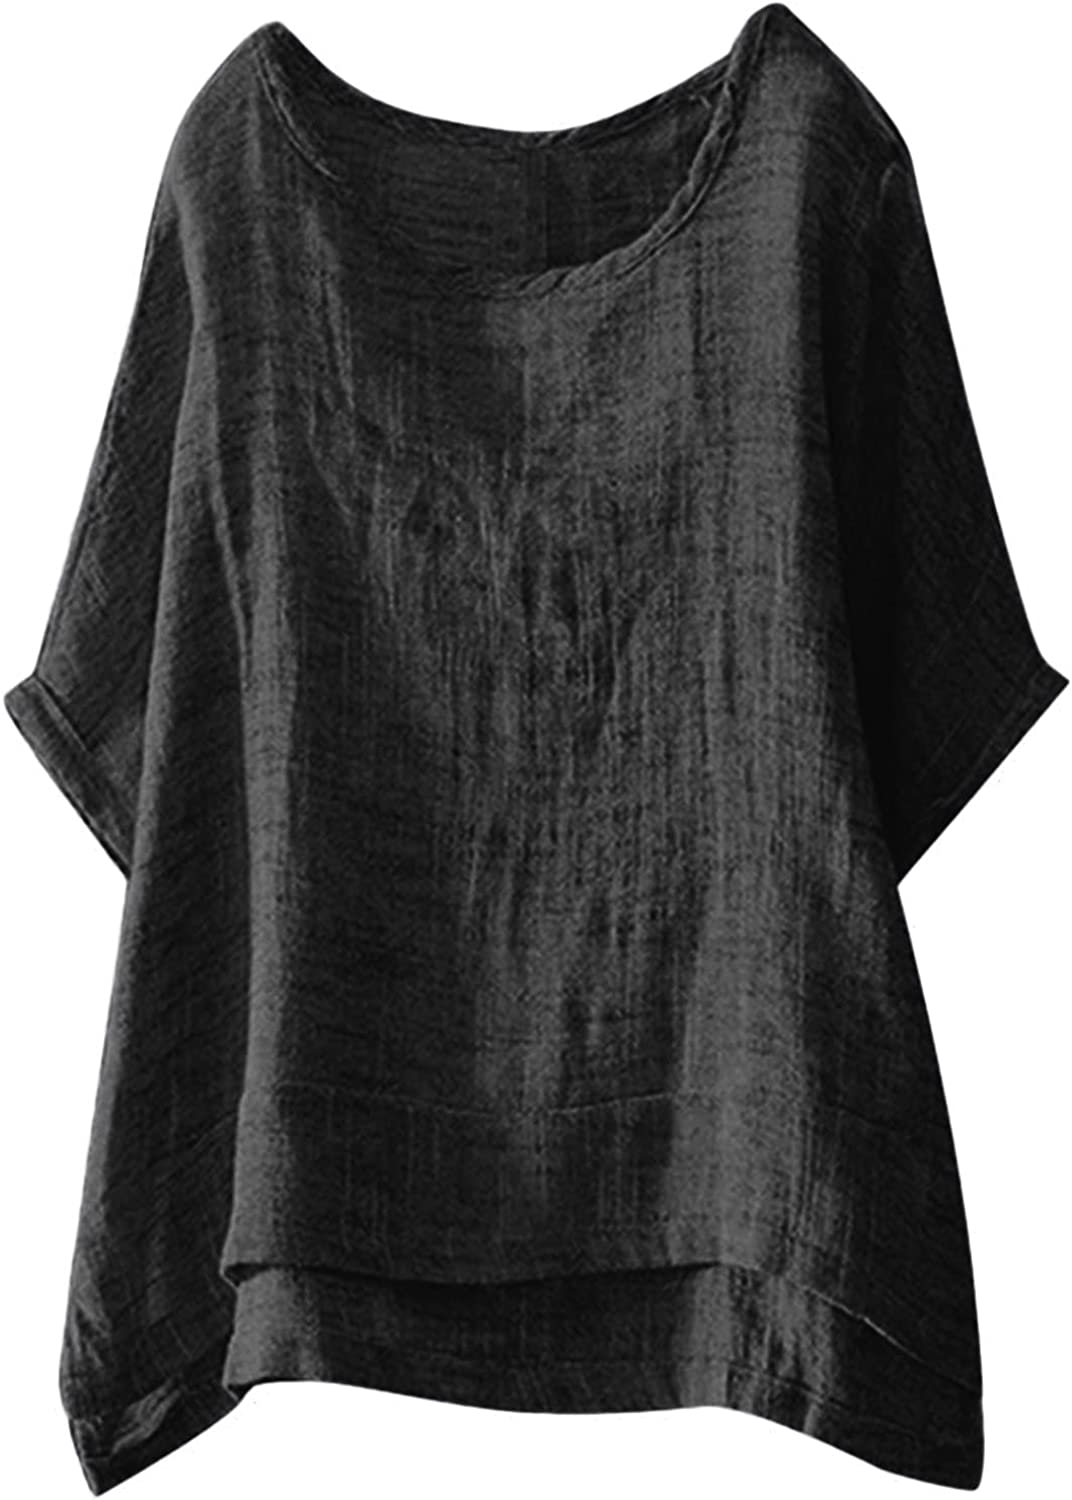 Womens 3/4 Sleeve Linen Shirts Round Neck Solid Color Summer Tops Casual Loose Fit Daily Blouses